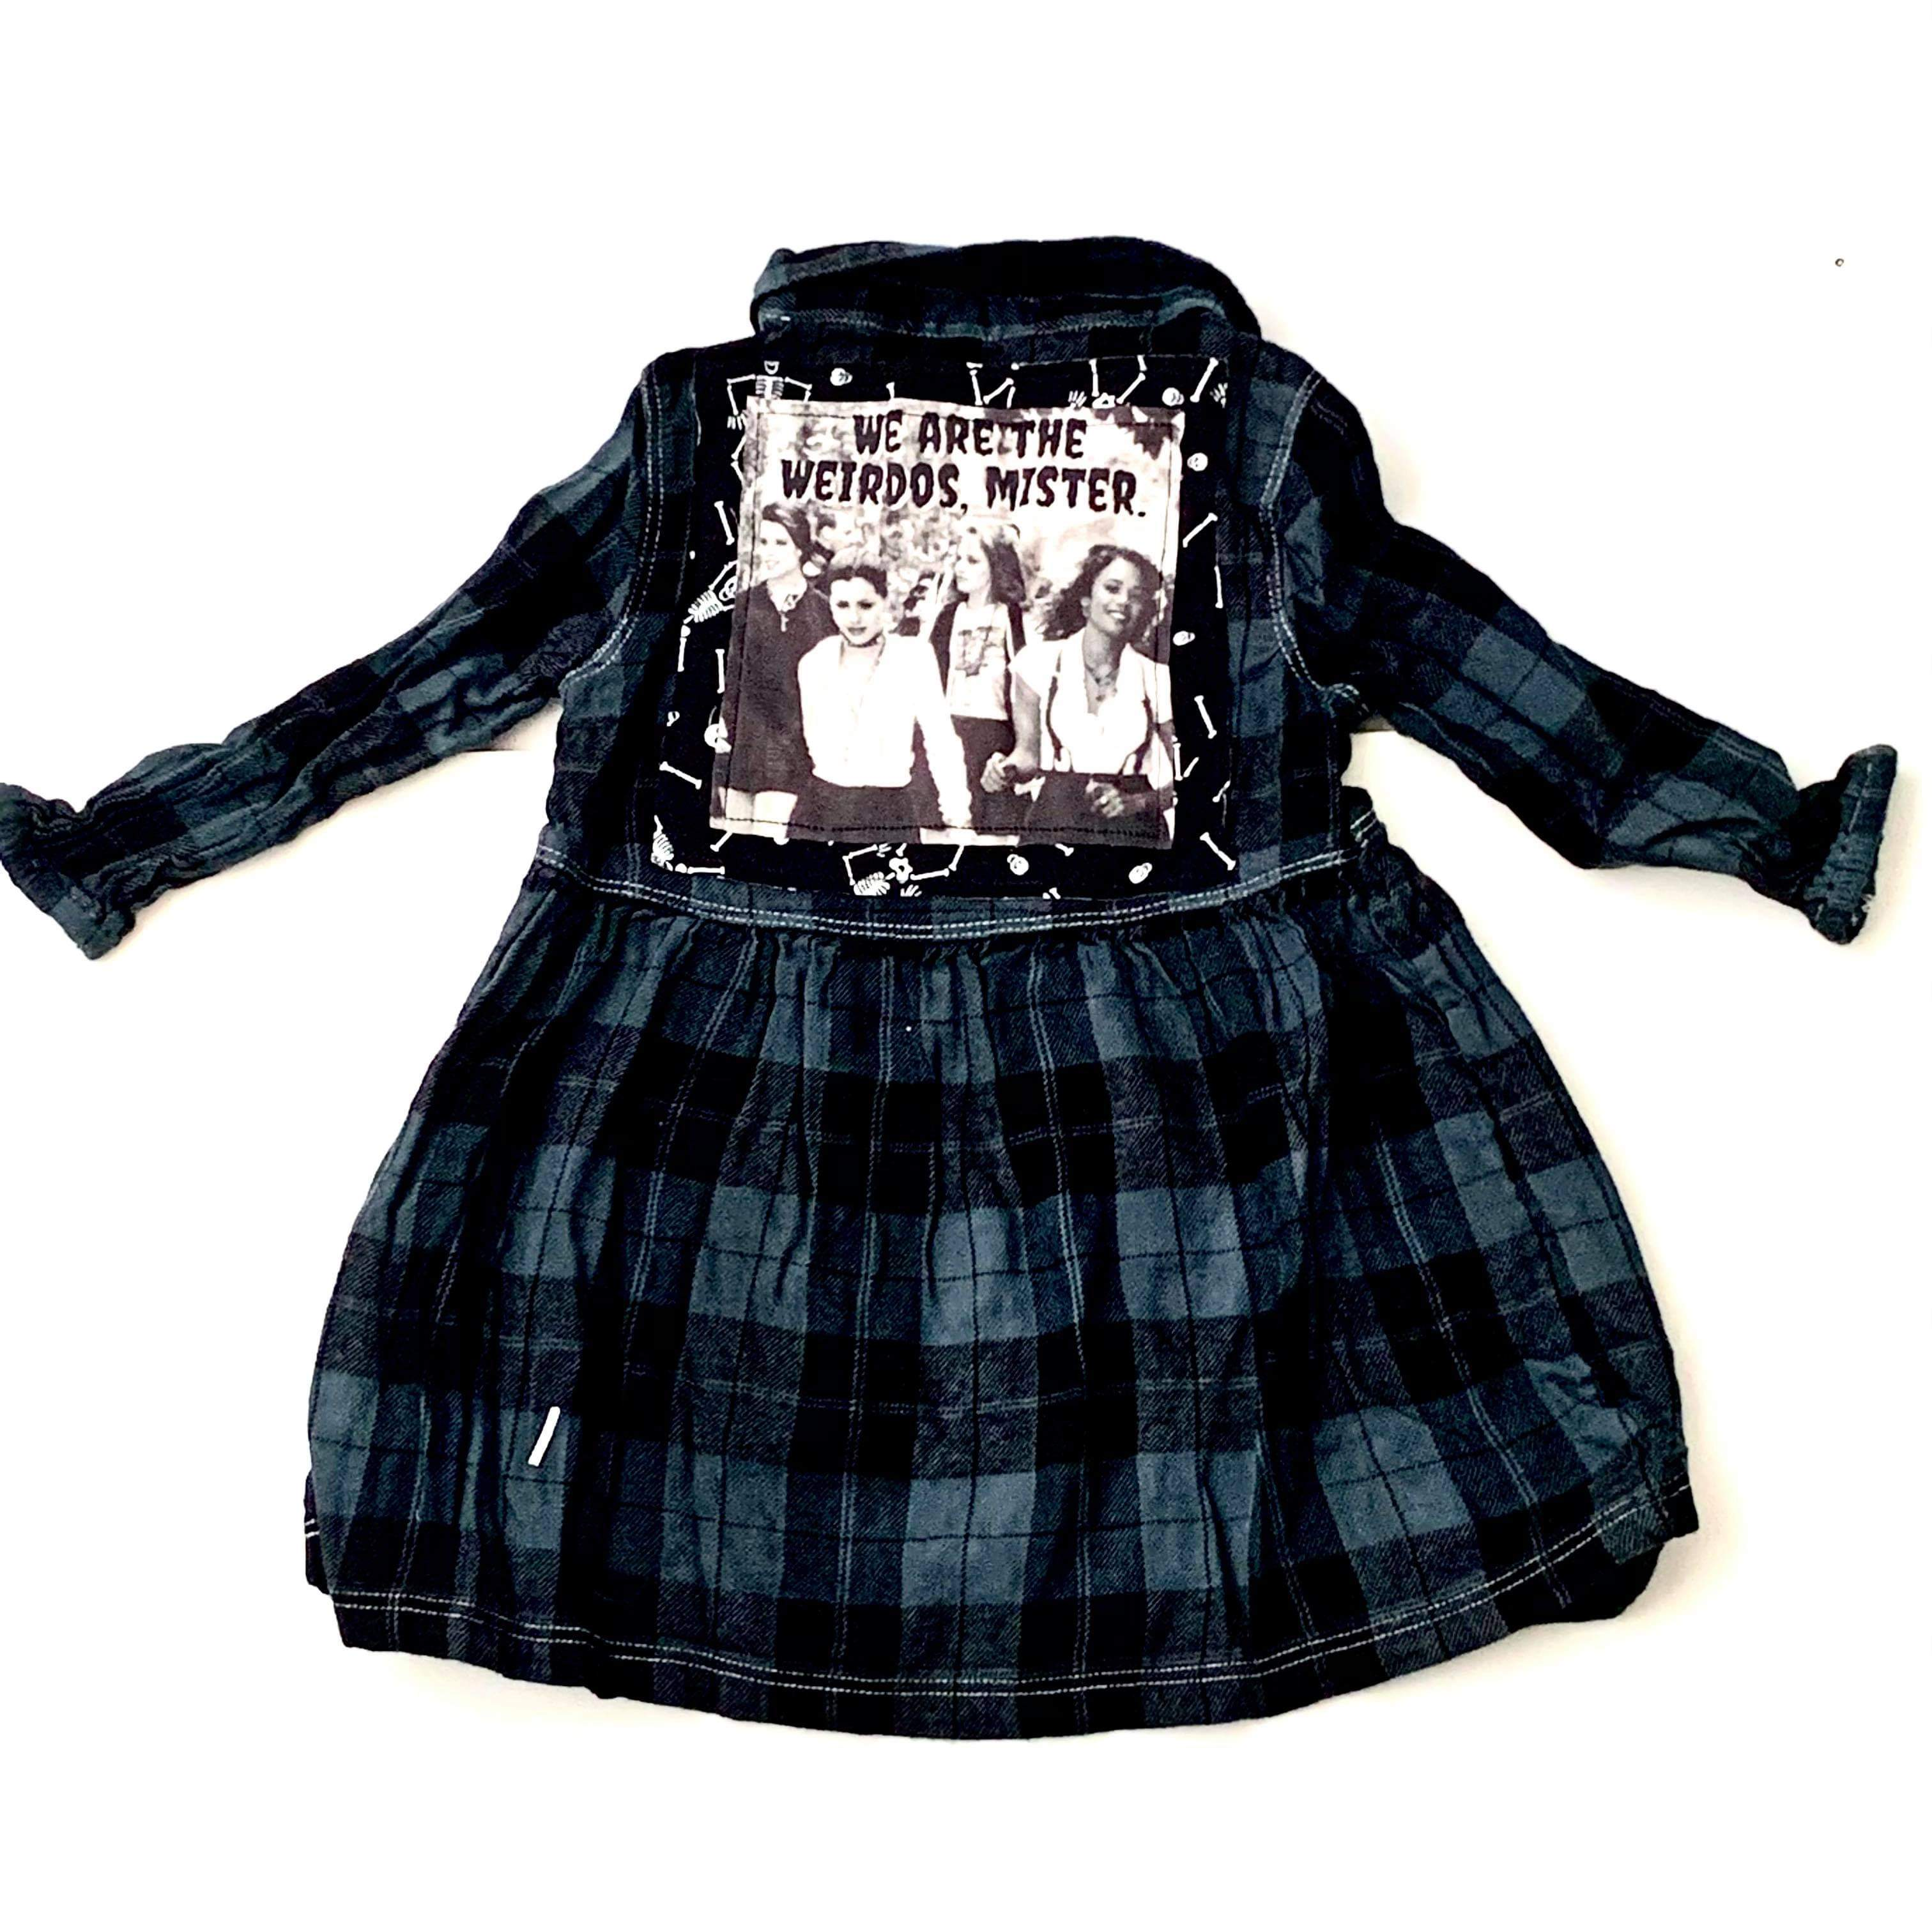 18/24M The Craft Flannel Dress